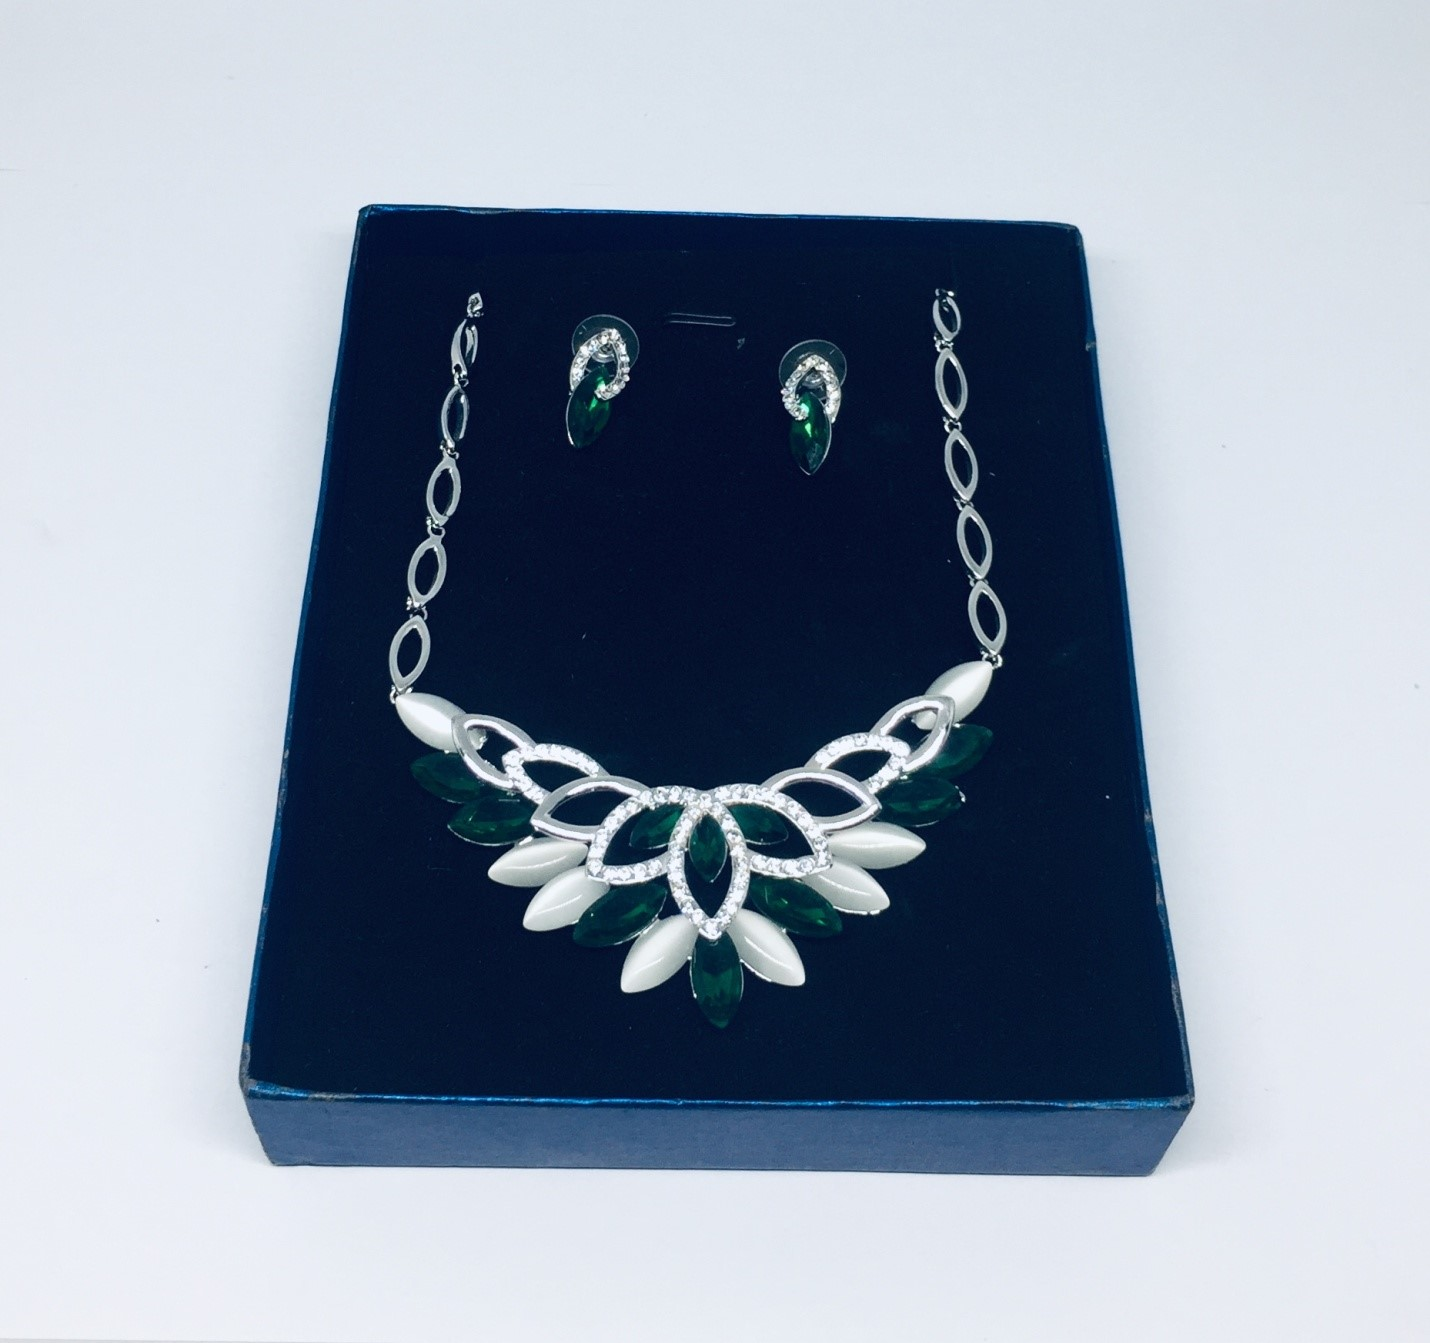 Silver Teardrop Necklace and Earrings Fashion Jewelry Set